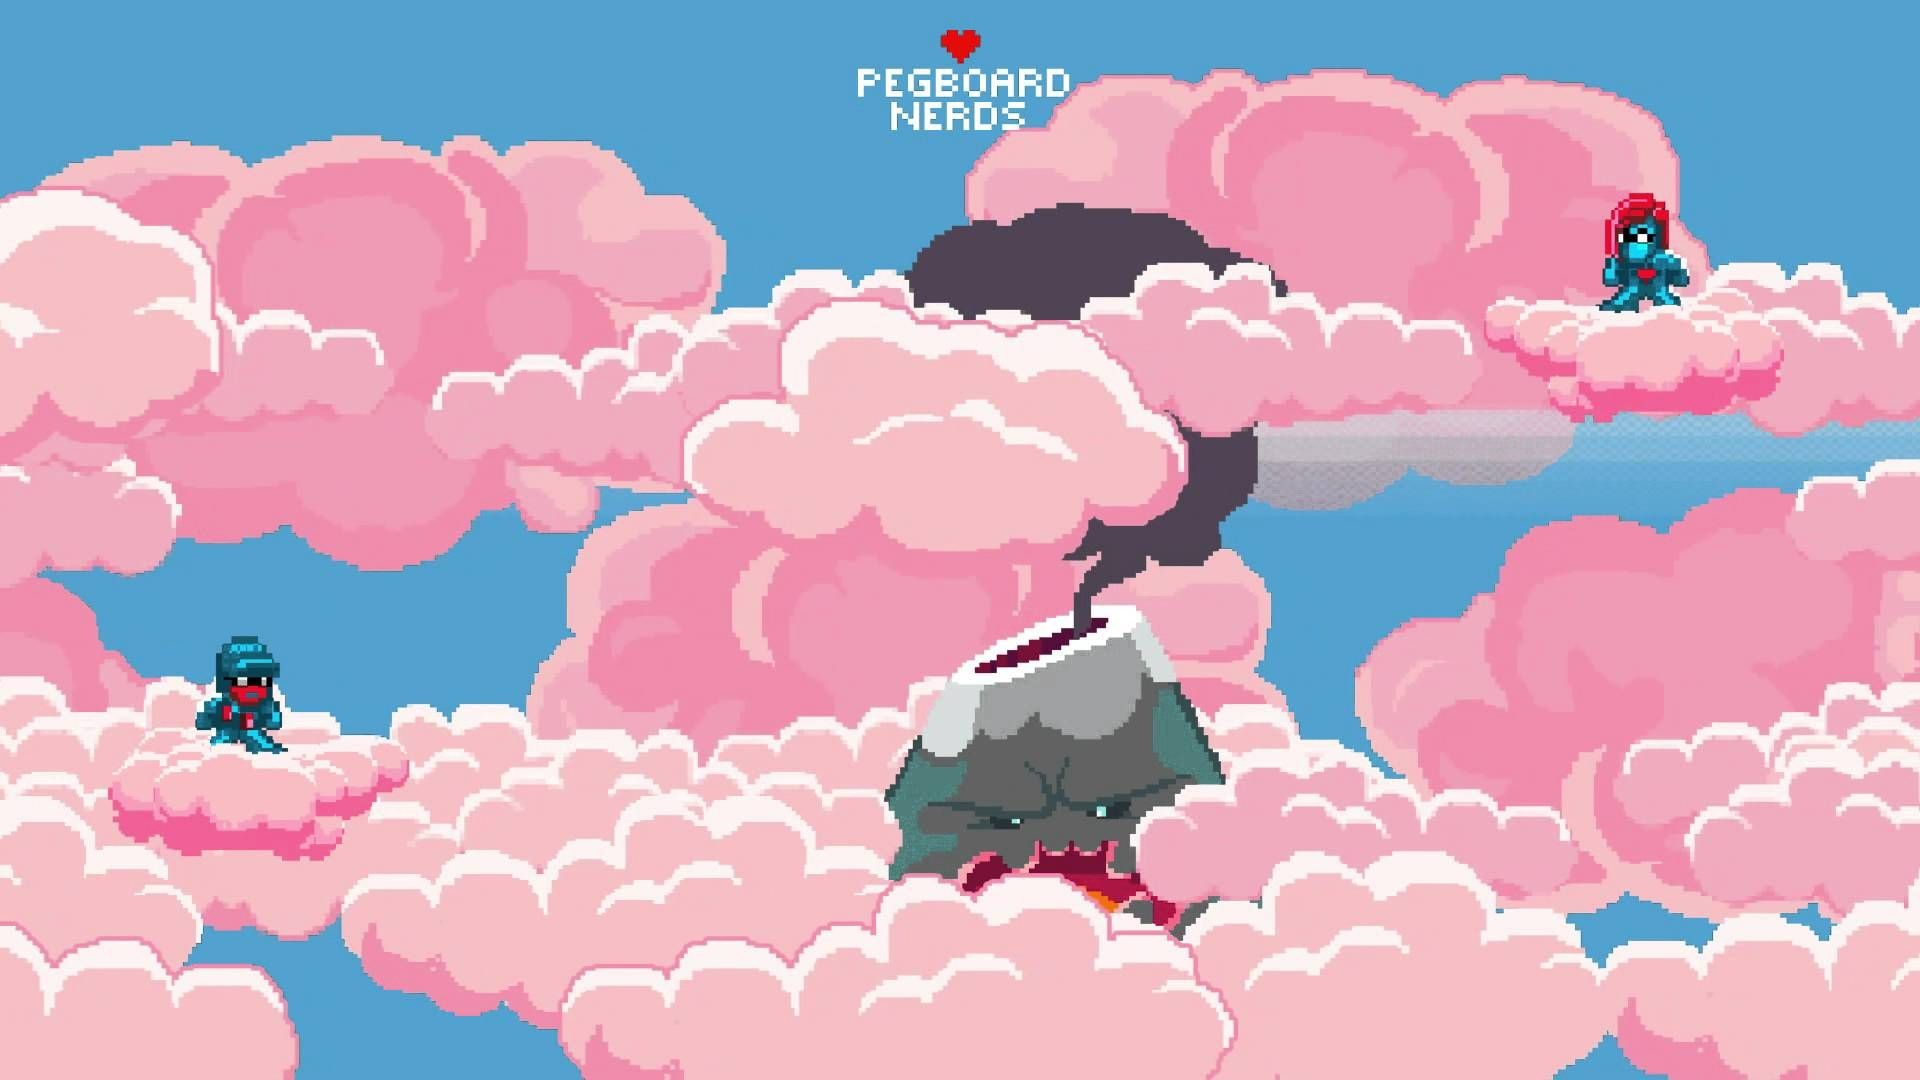 Res: 1920x1080, pink cloud pegboard nerds - Google Search